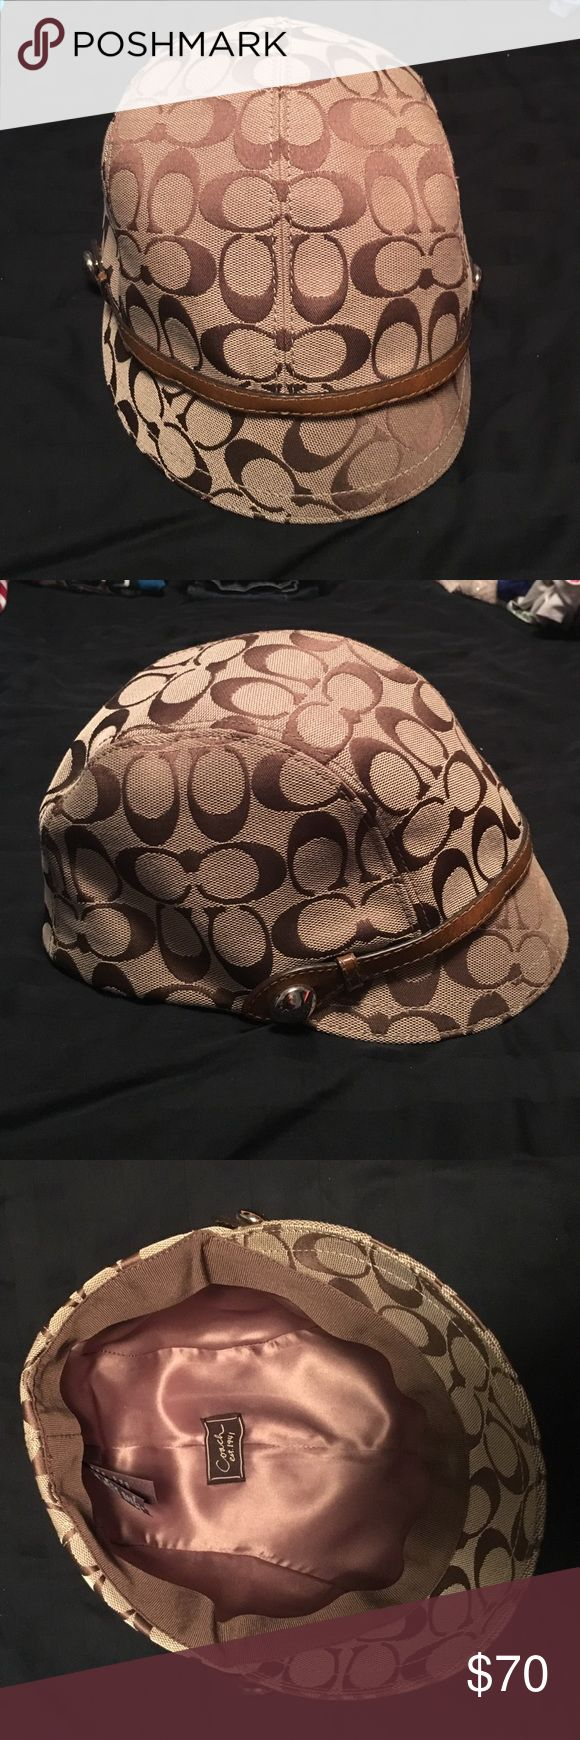 Coach hat Very cute brown Coach hat. Like new condition, worn once.  Some wear marks in the inside brim. $70 obo. Coach Accessories Hats